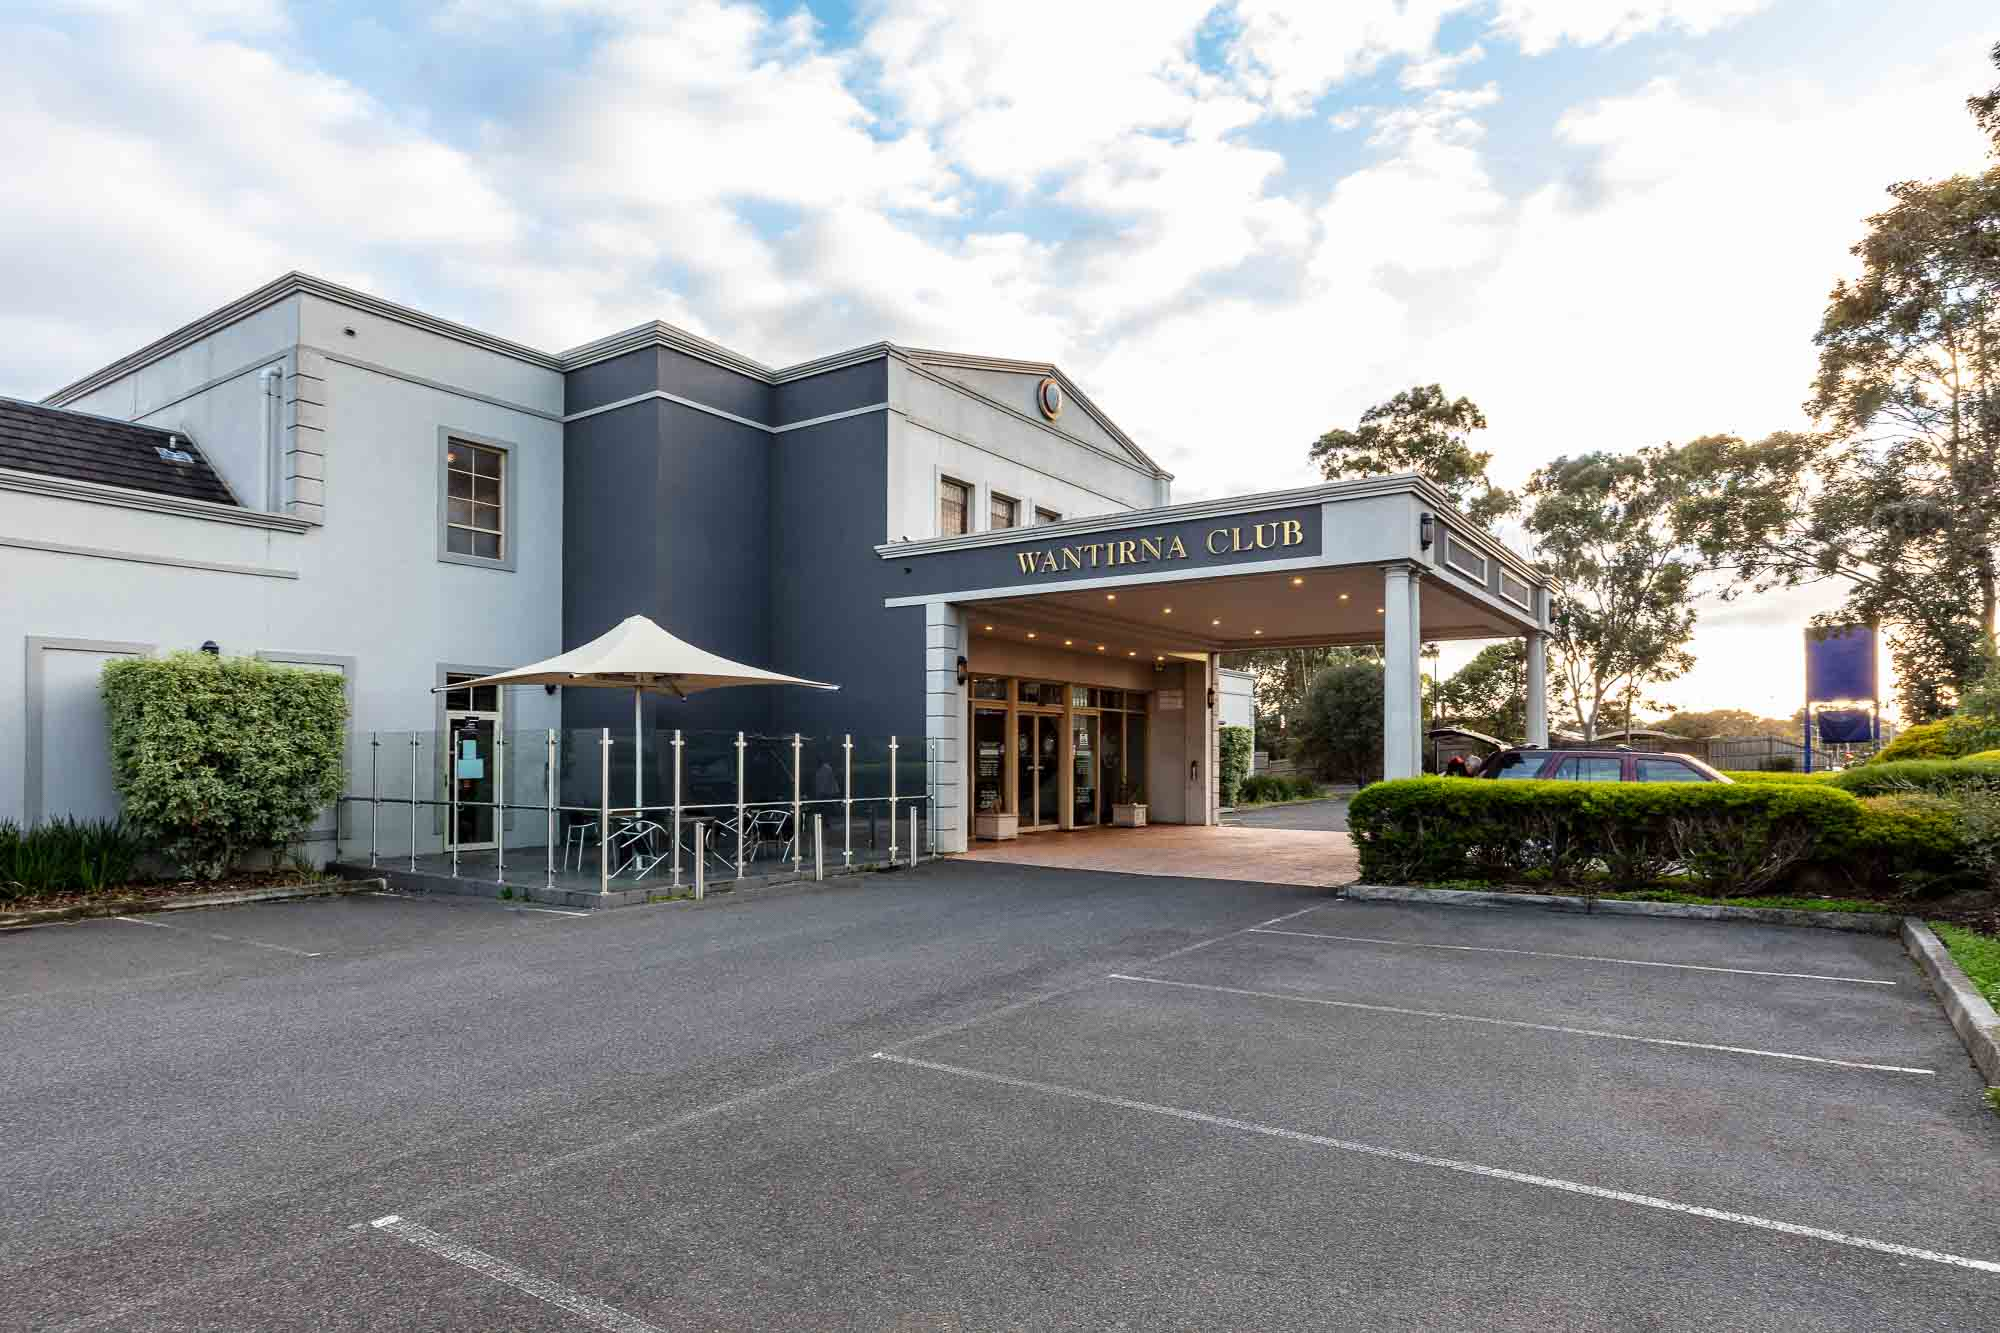 Commercial photography sample - Wantirna Club front of building left side